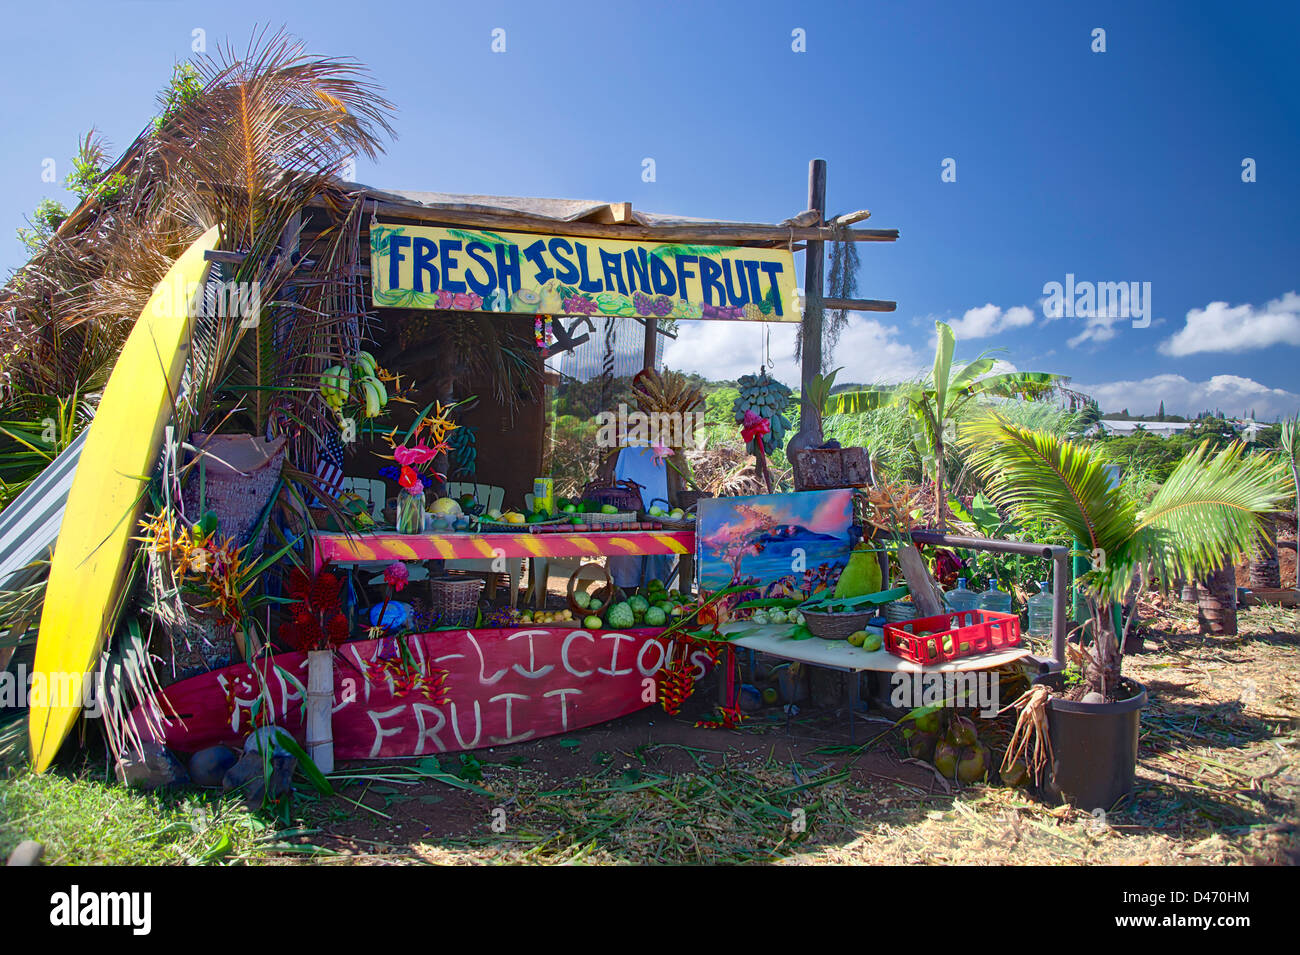 Three image exposures were combined for this photograph of a fruit stand on the Hana Highway, Maui, Hawaii. Stock Photo